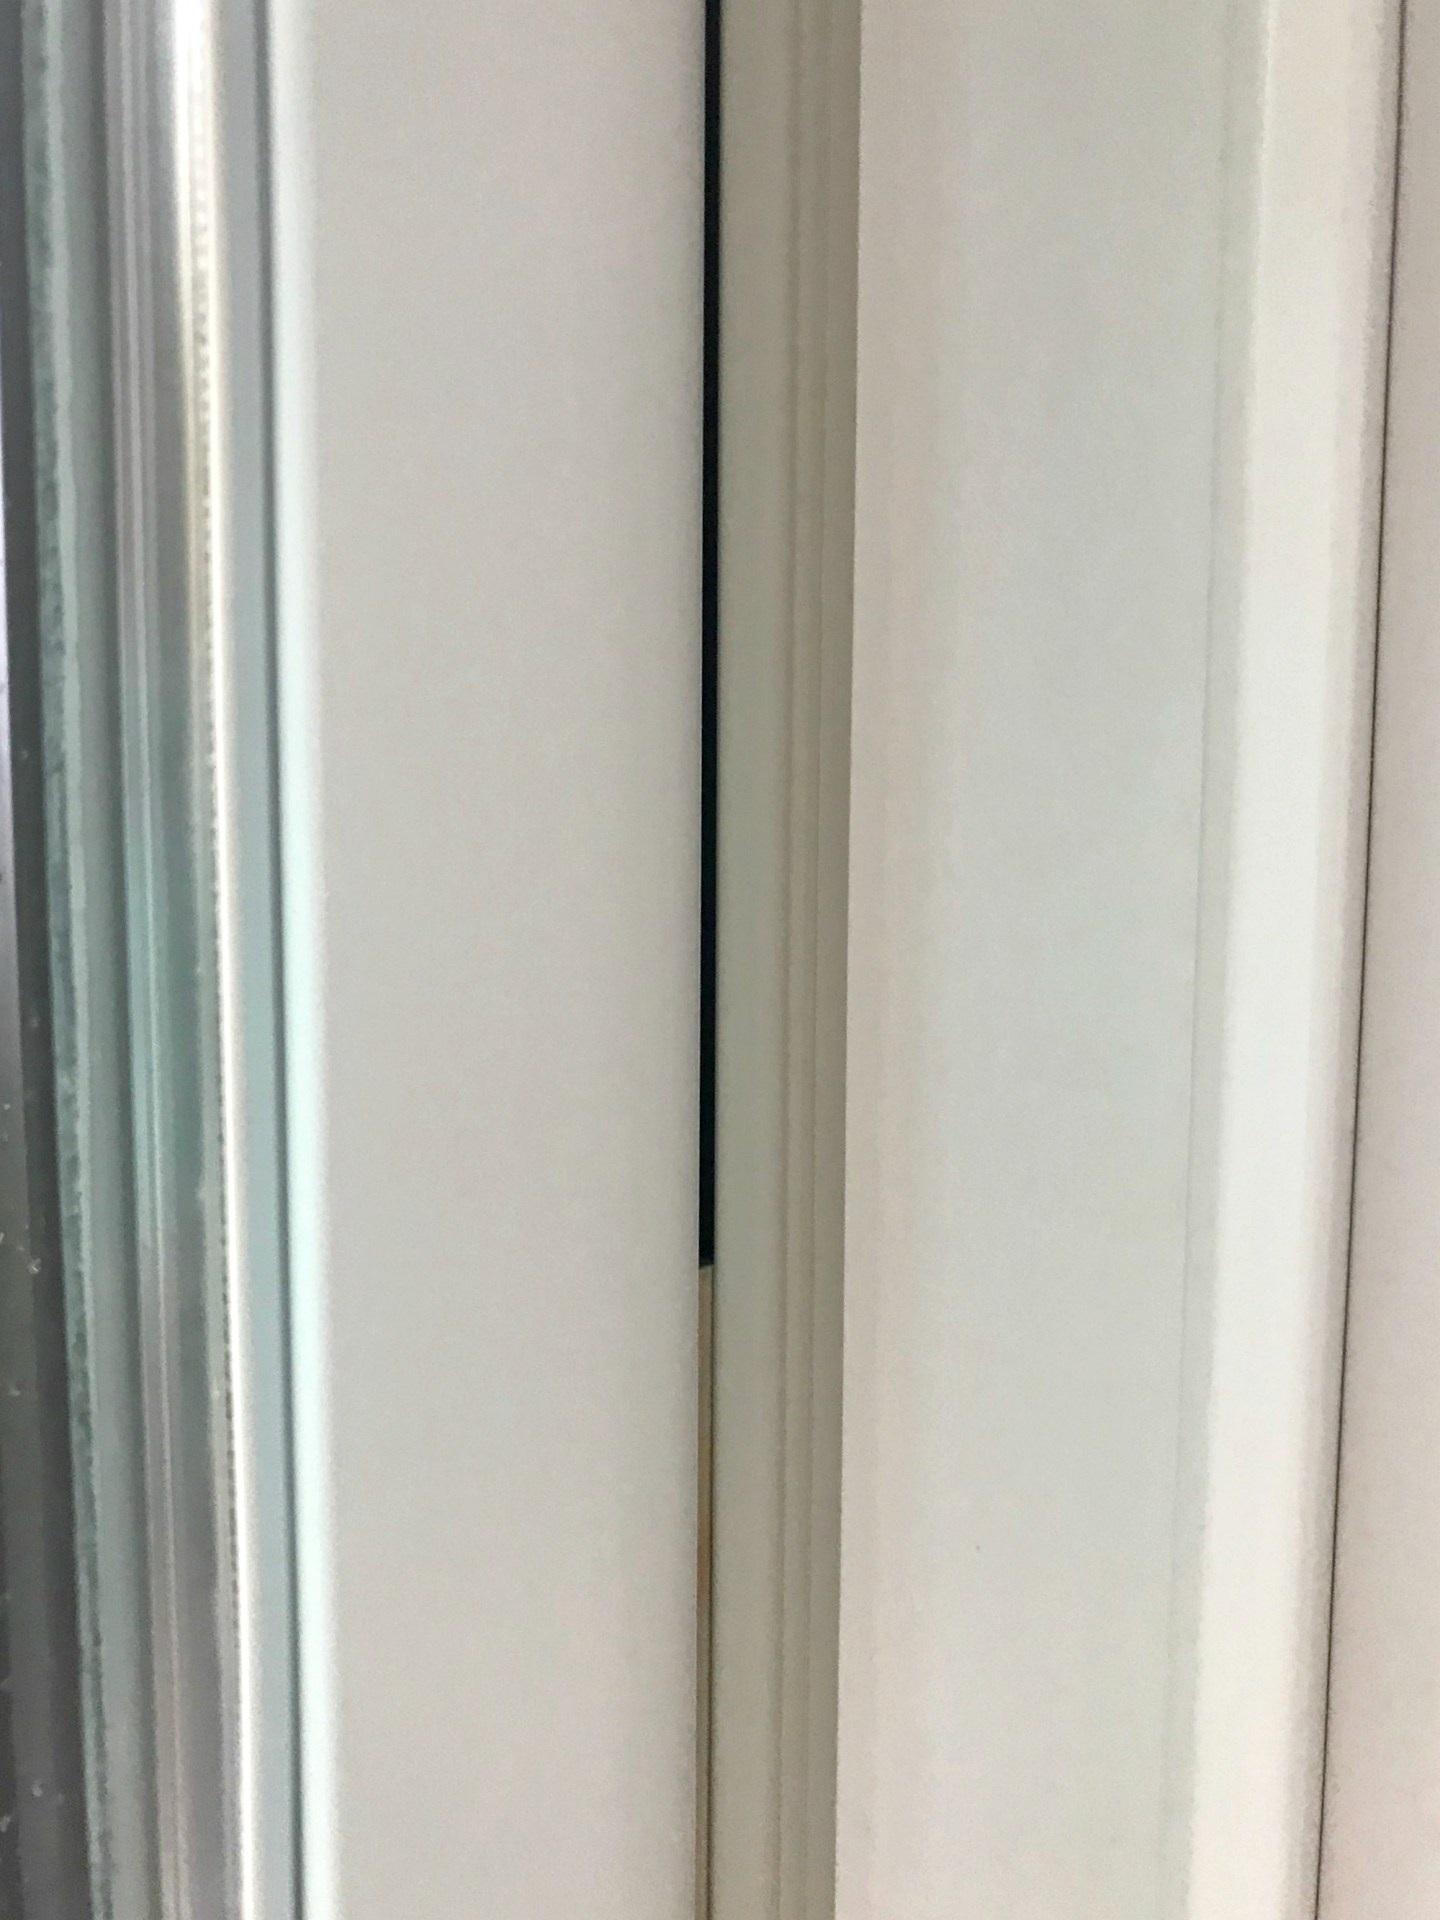 Marvin Integrity Sliding Door Leaking Cold Air